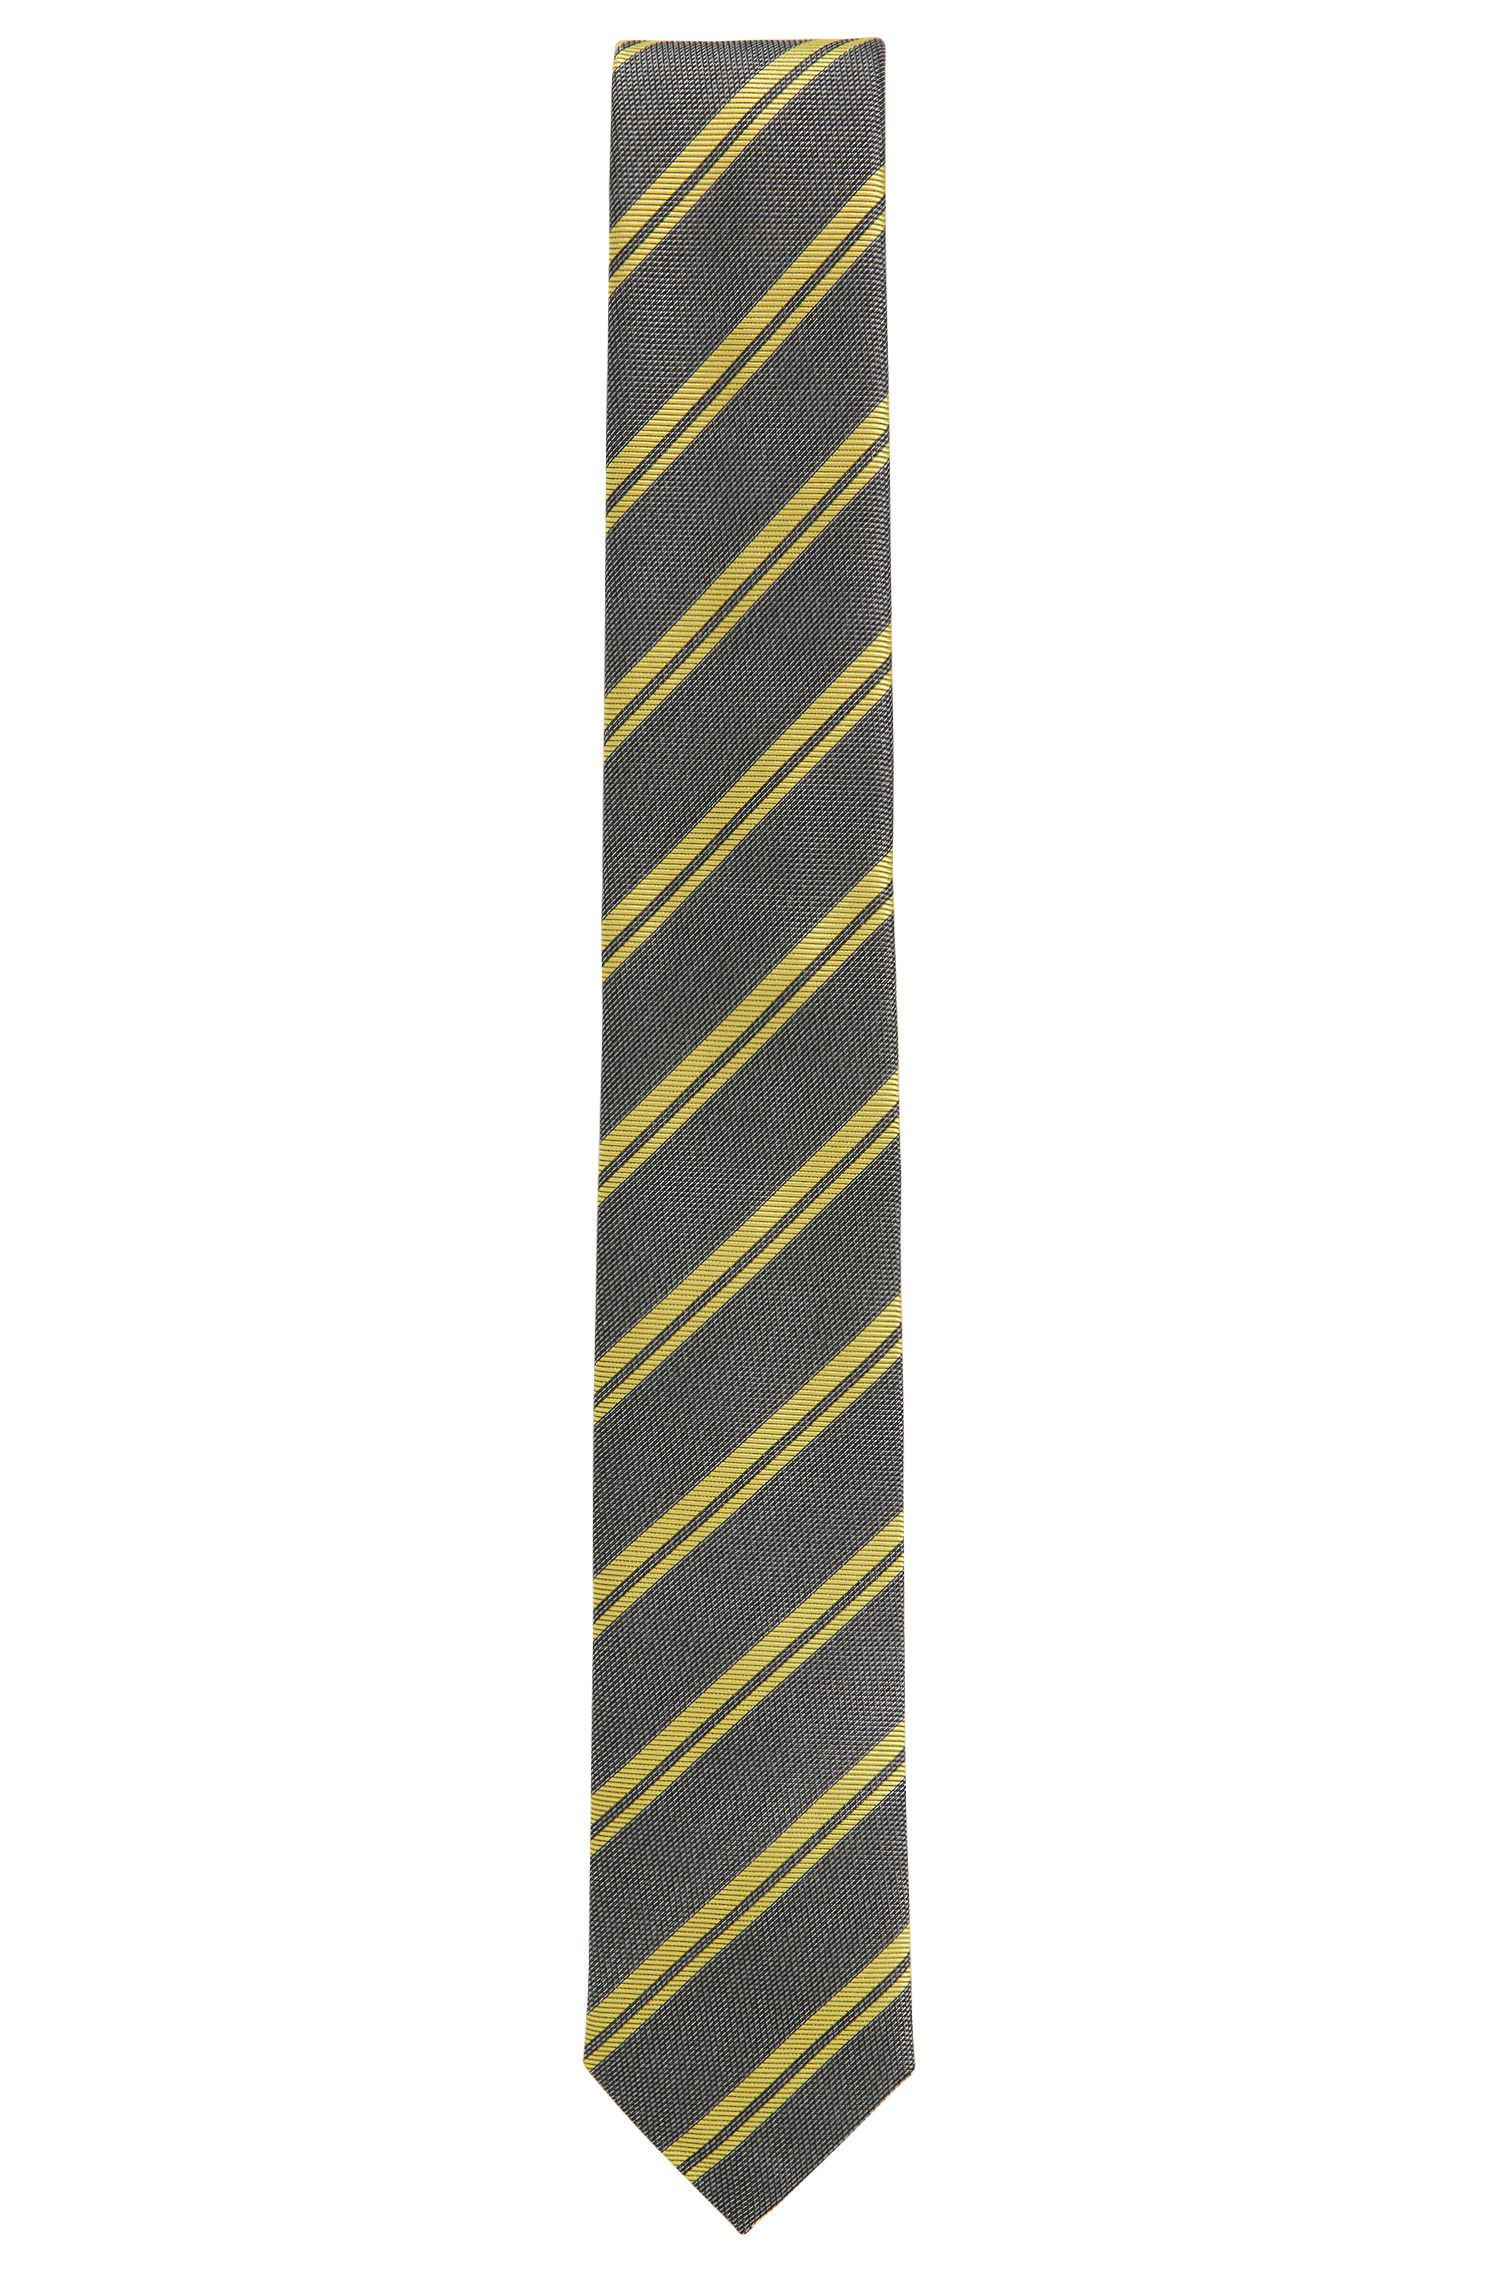 BOSS Tailored Striped Italian Silk Tie, Yellow